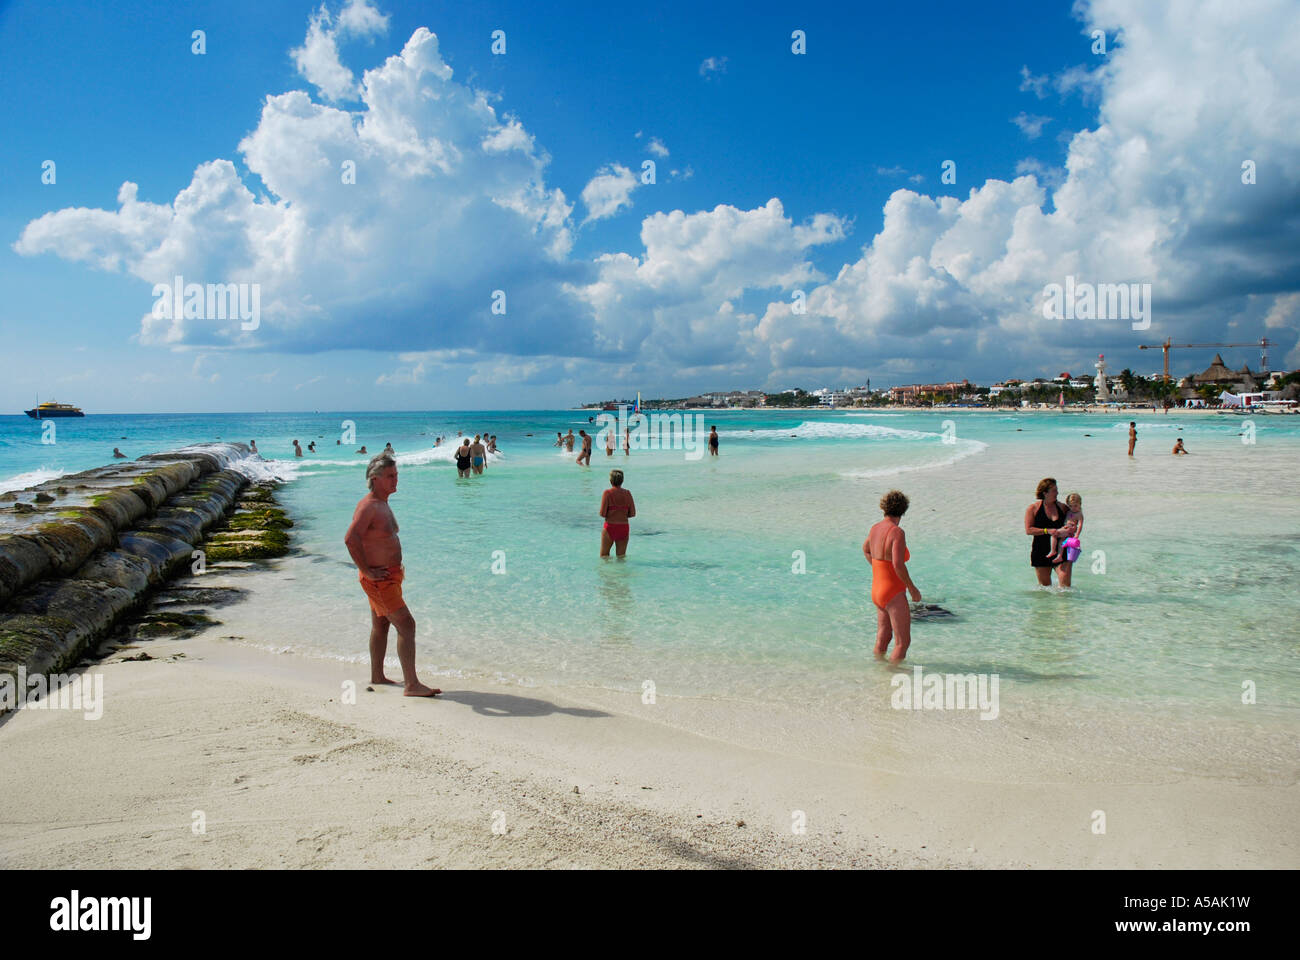 Beach life at the 10 mile long beach in Playa del Carmen Mexico - Stock Image